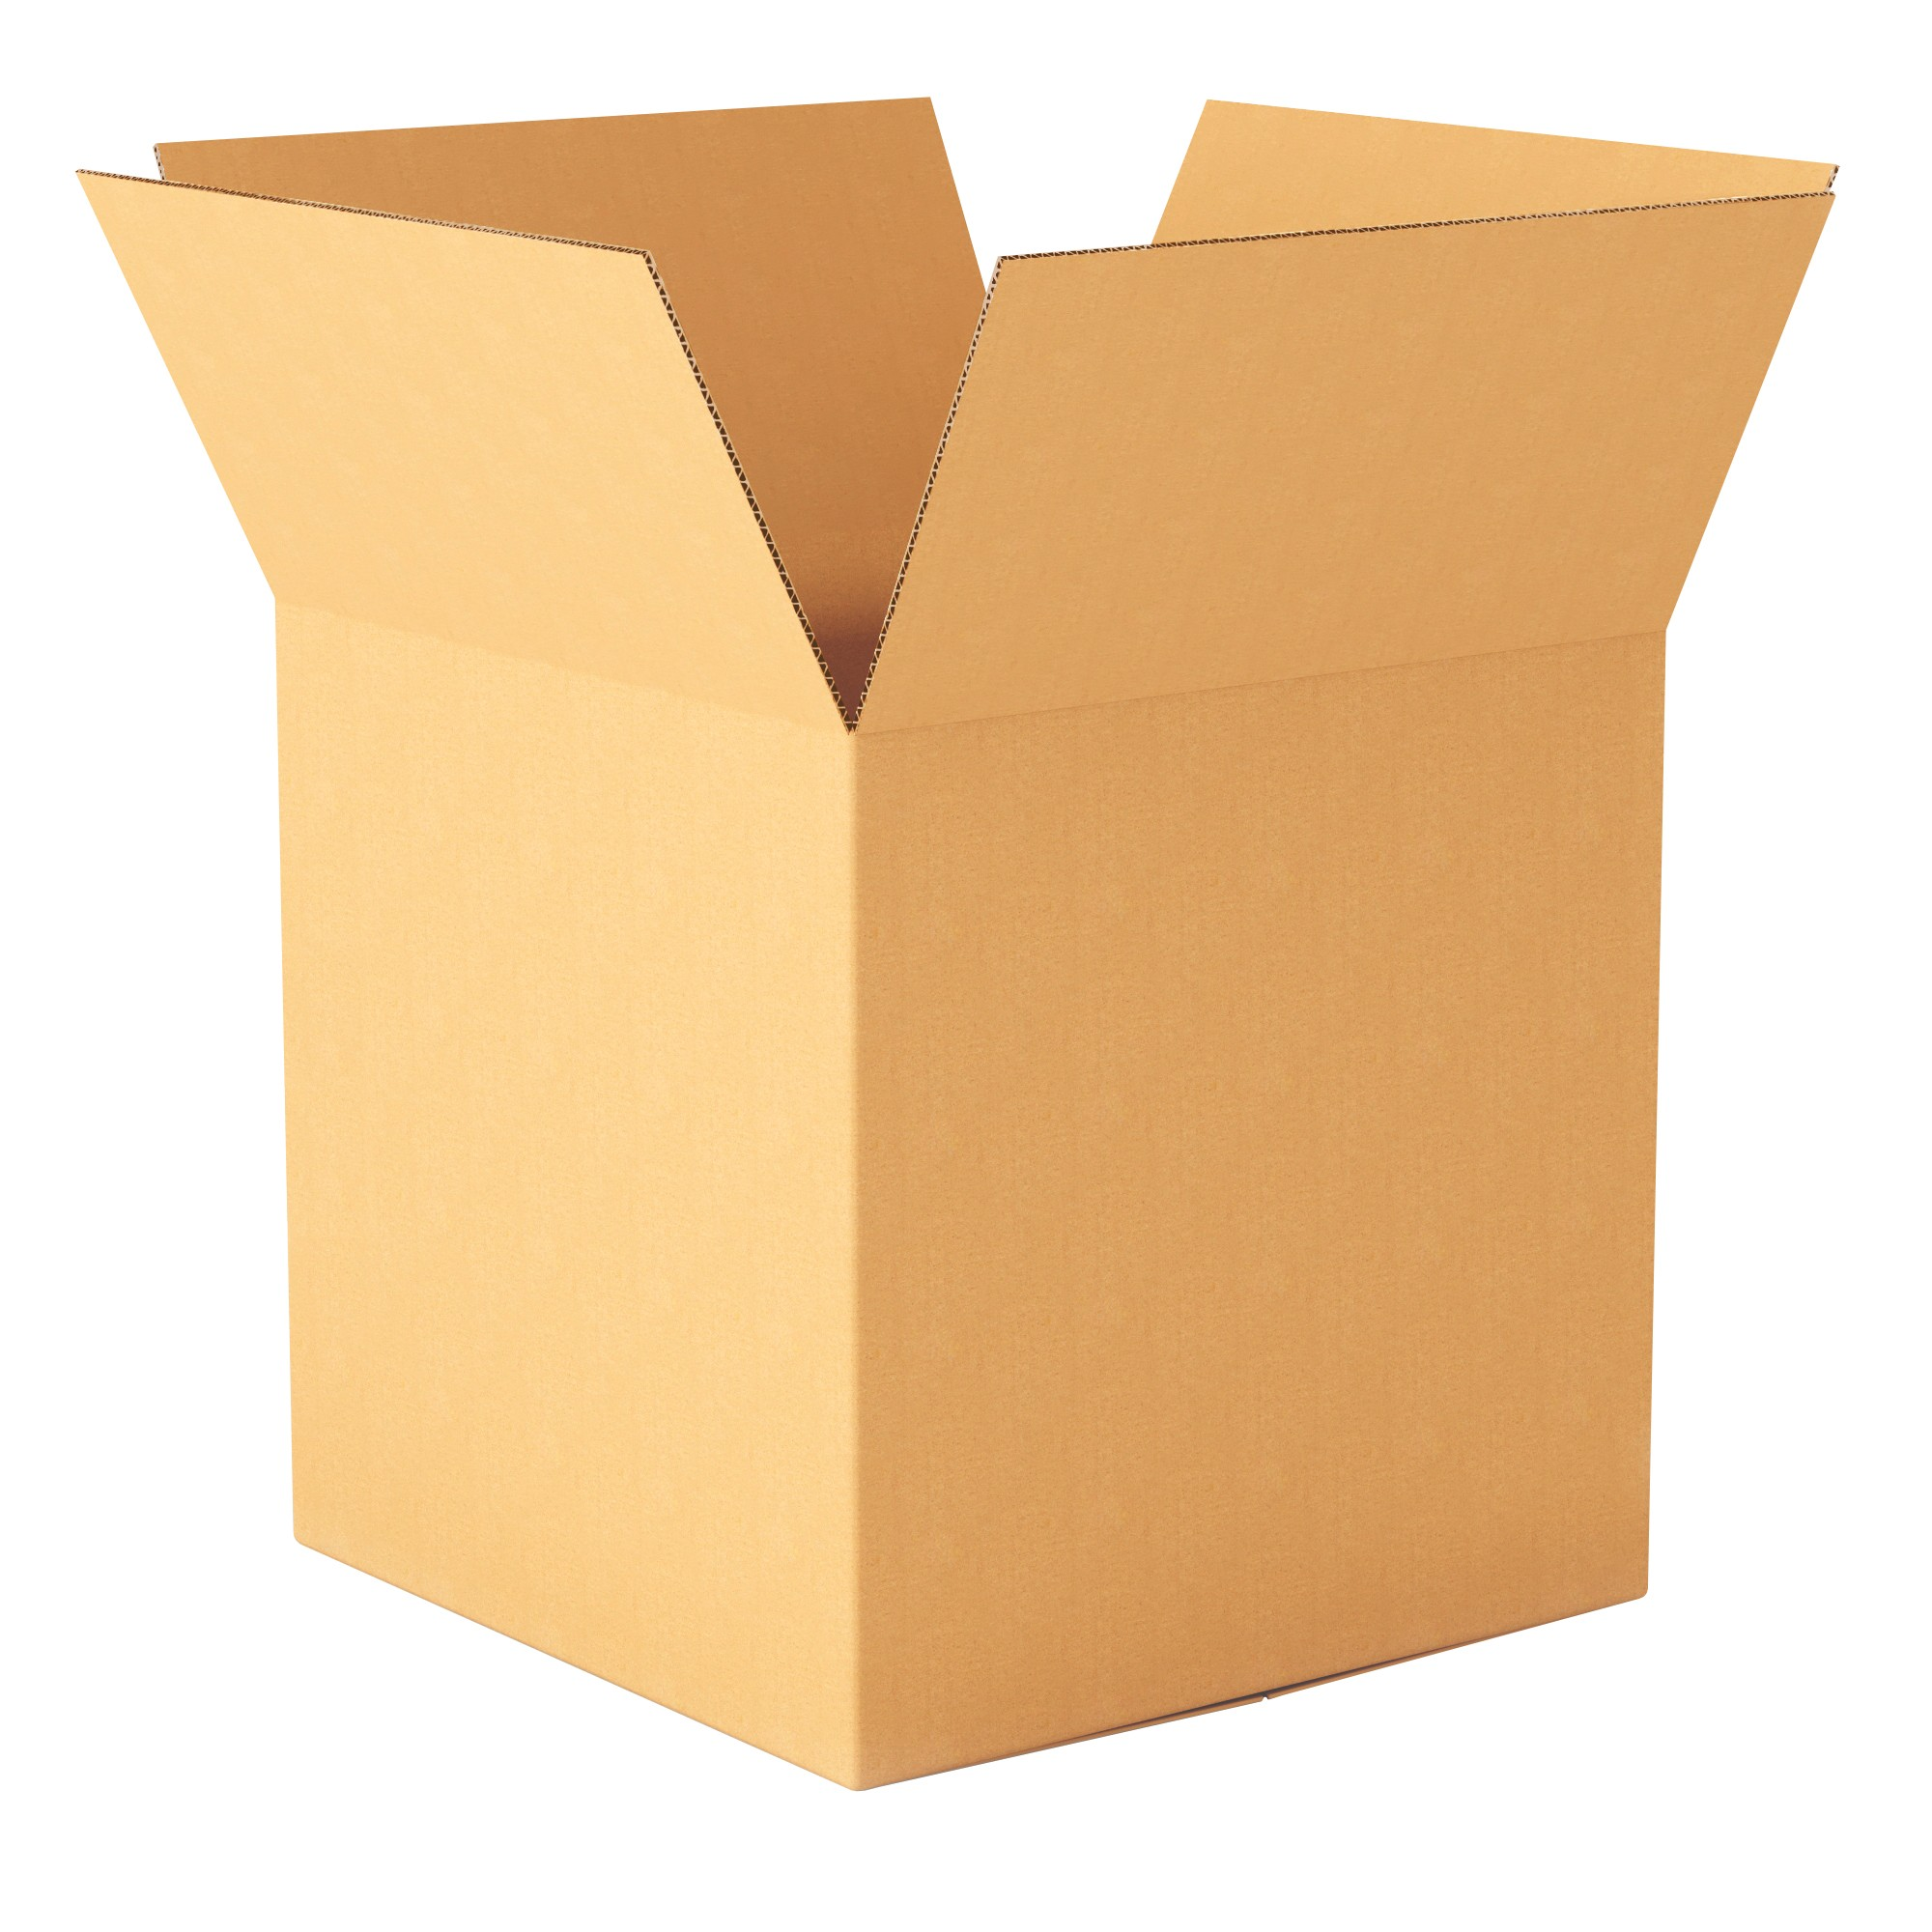 """TOTALPACK® 20 x 20 x 20"""" Single Wall Corrugated Boxes 15 Units"""